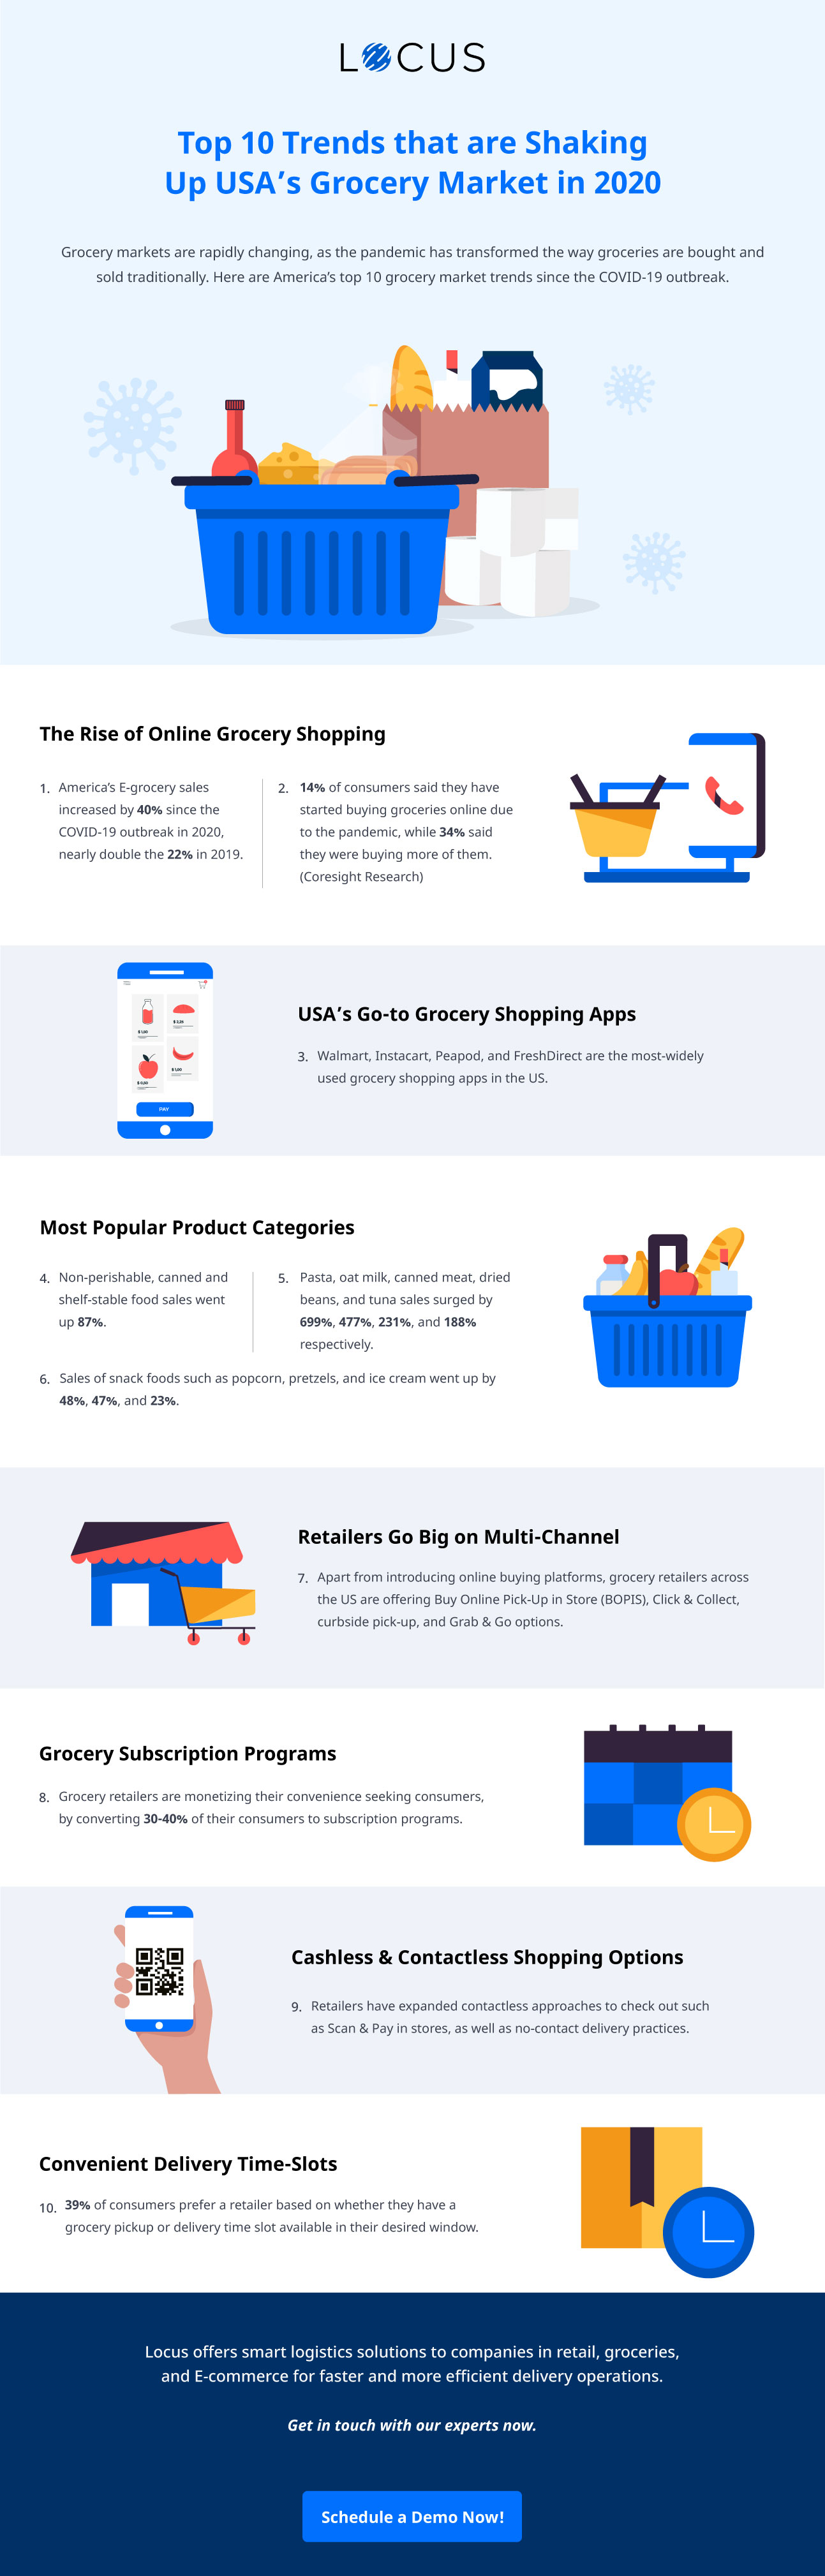 Top 10 Trends that are Shaking Up USA's Grocery Market 2020